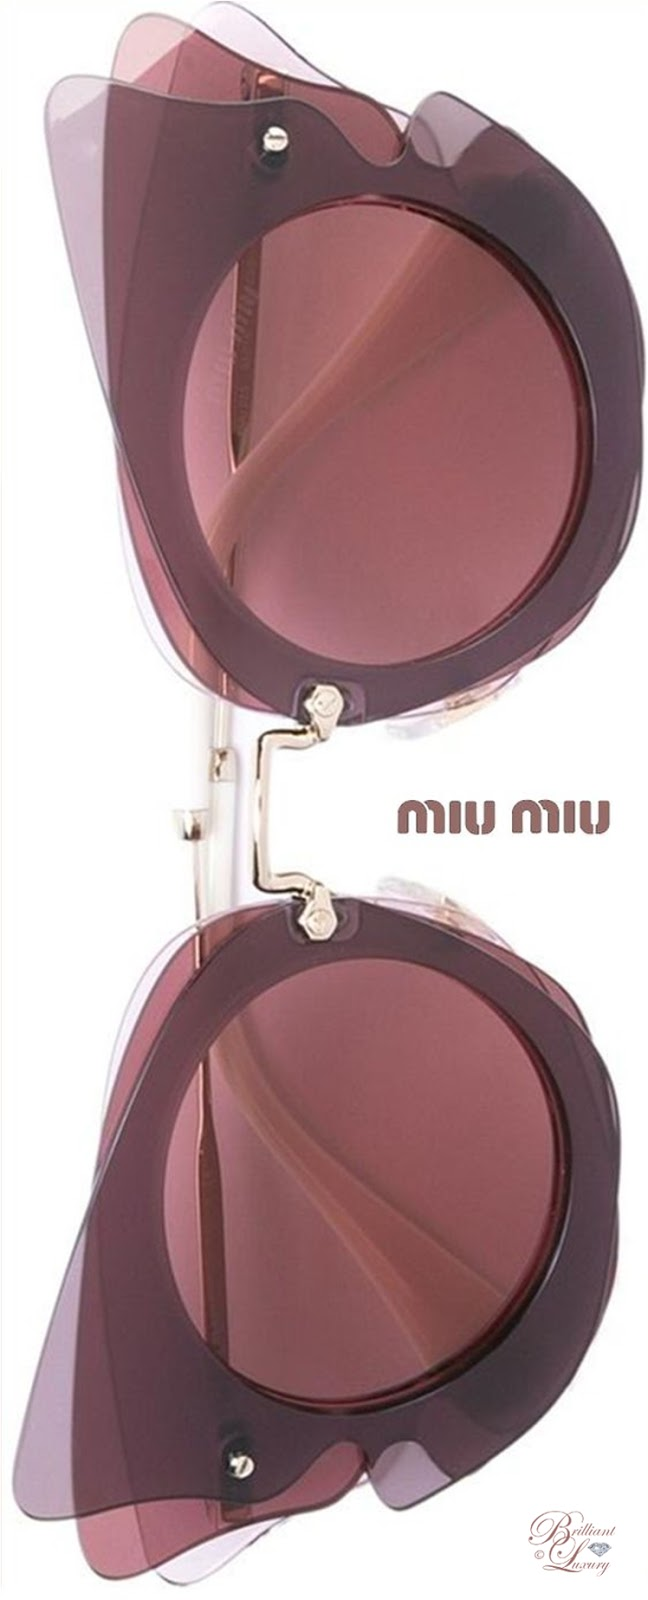 Brilliant Luxury ♦ Miu Miu Eyewear Oversized Sunglasses